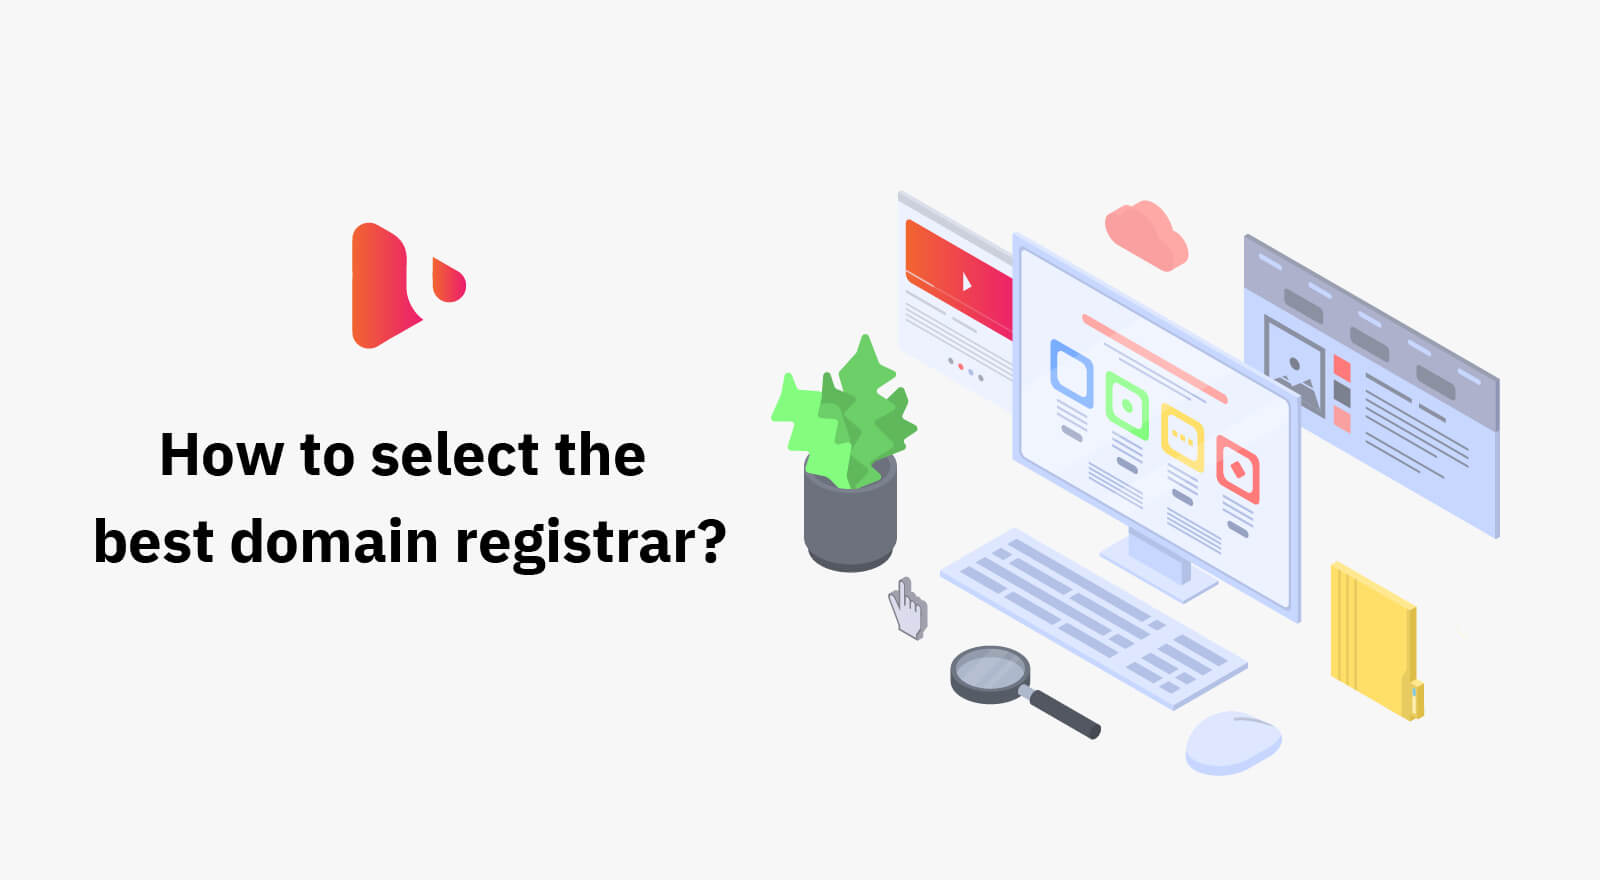 How to Select the Best Domain Registrar